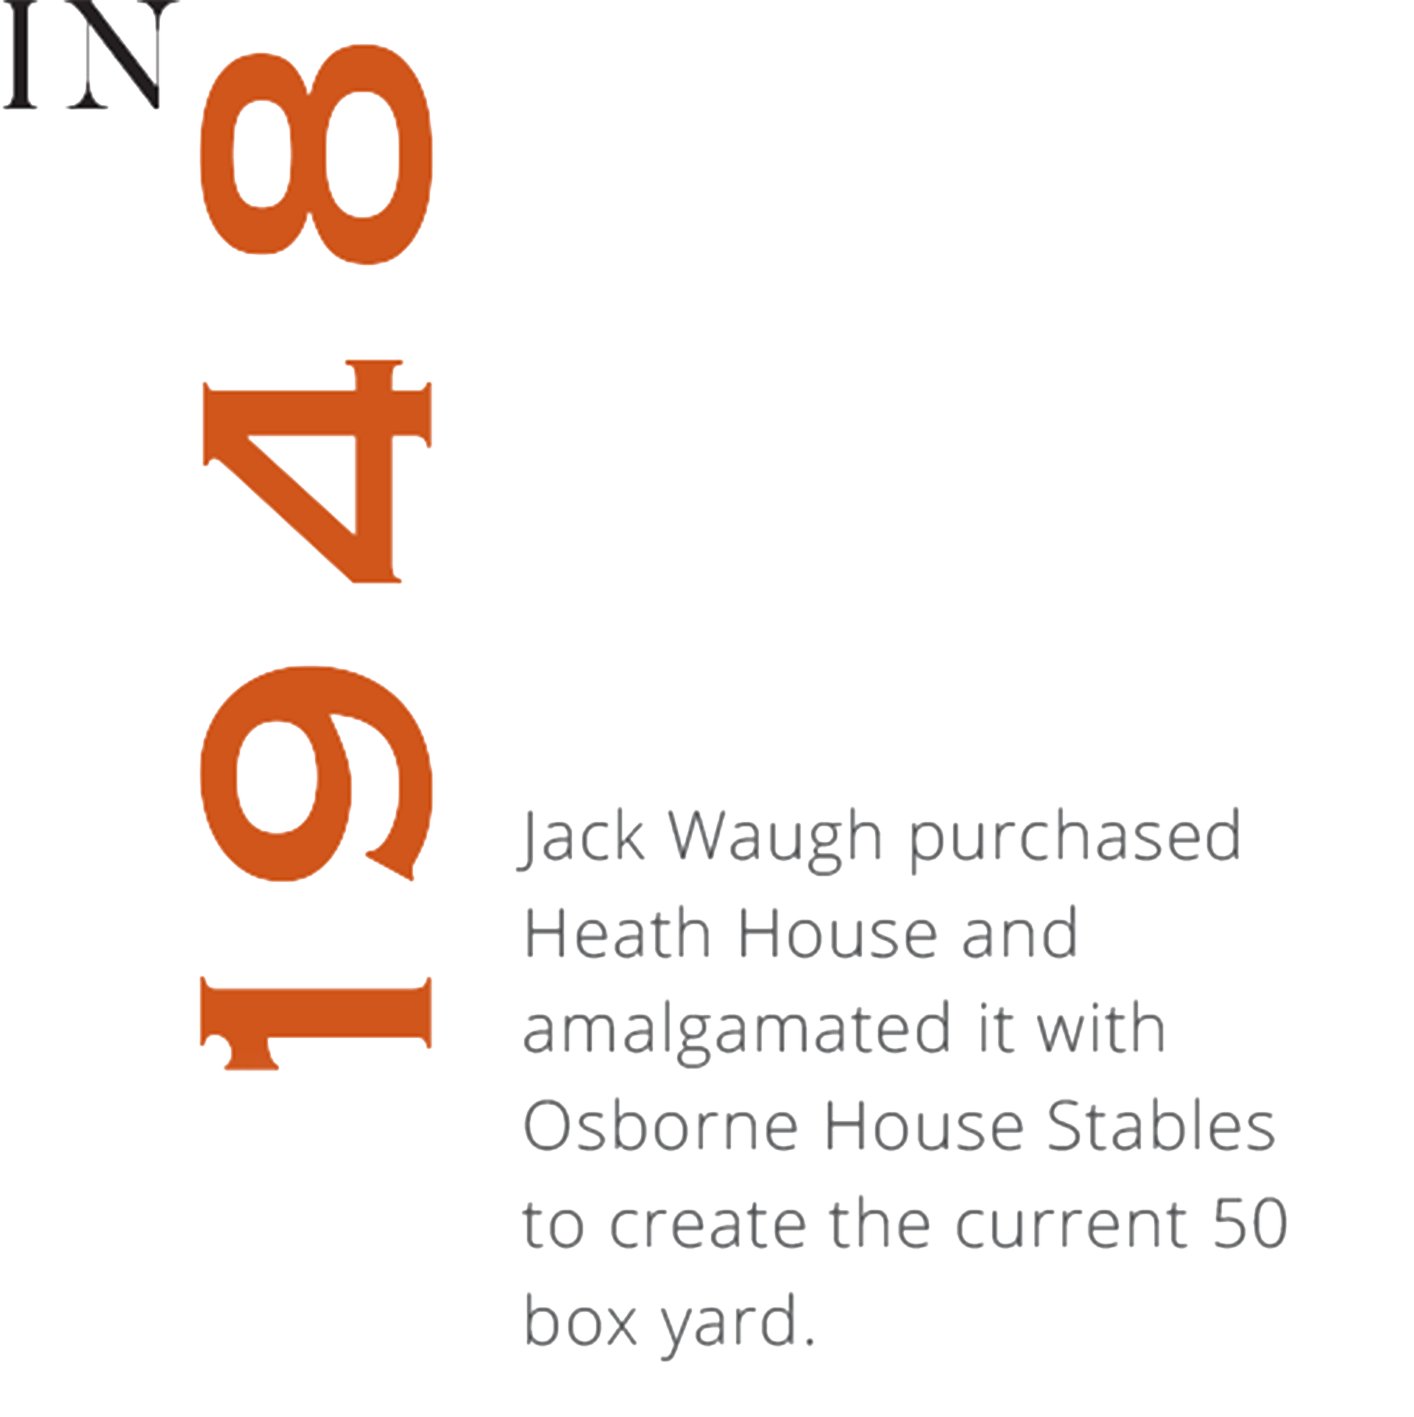 Heath House Stables Jack Waugh